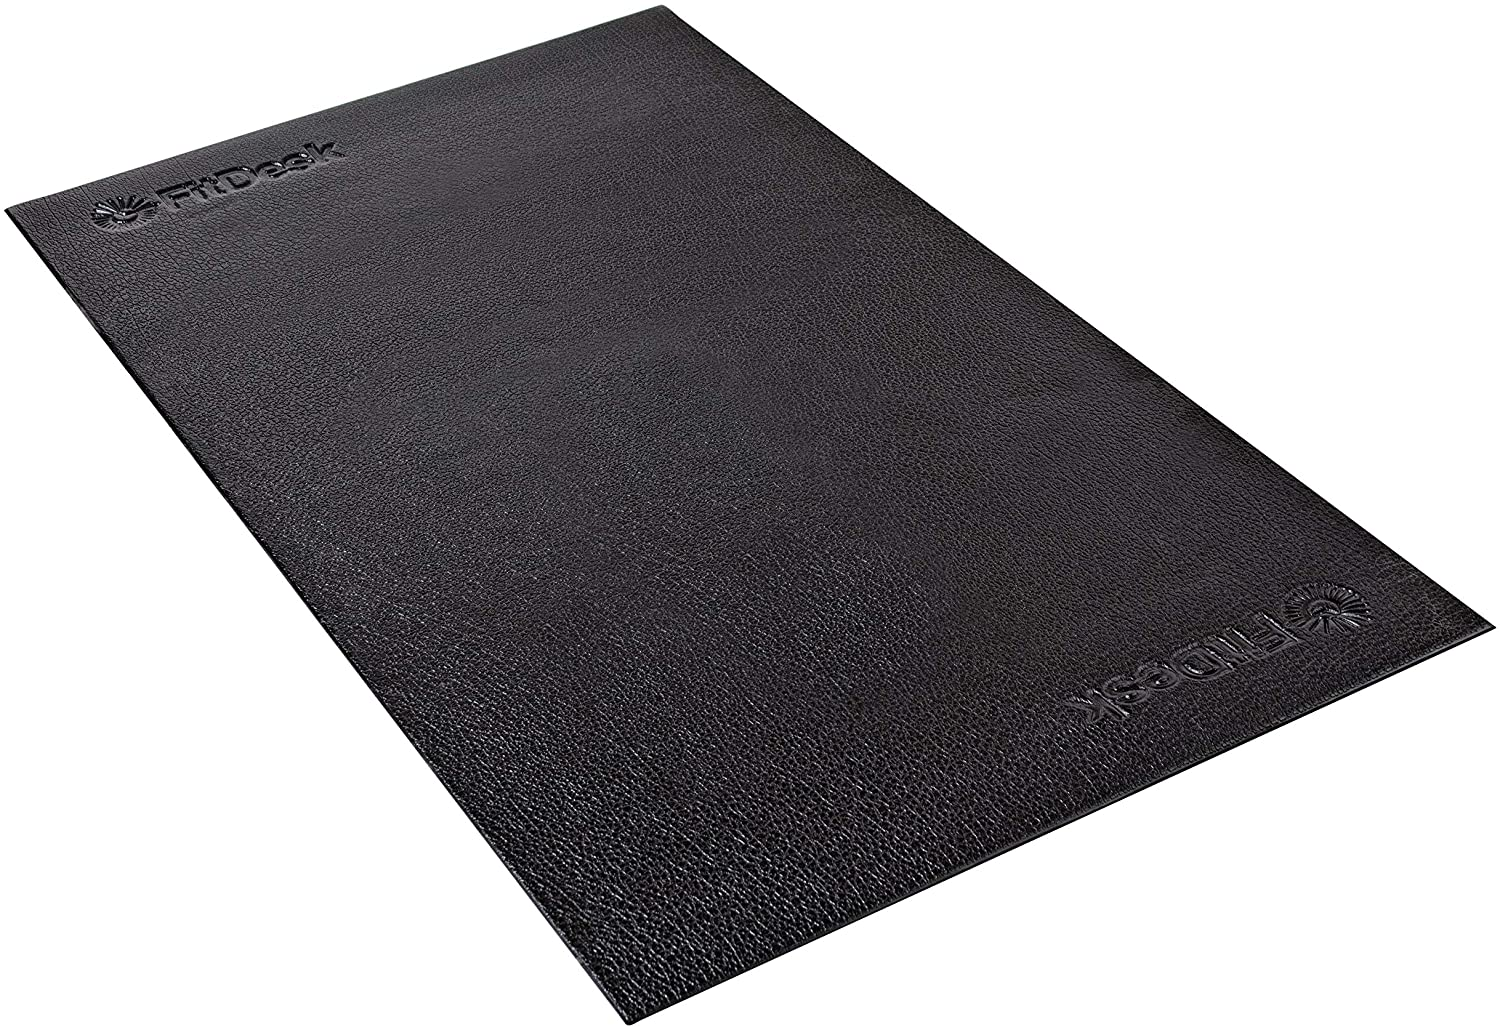 FitDesk Protective Floor Mat - High Density PVC Construction Material for Heavy Equipment like Bikes - No Bleeding on Carpets - Lightweight and Easy to Roll Up Gym Mat - Surface Area 48